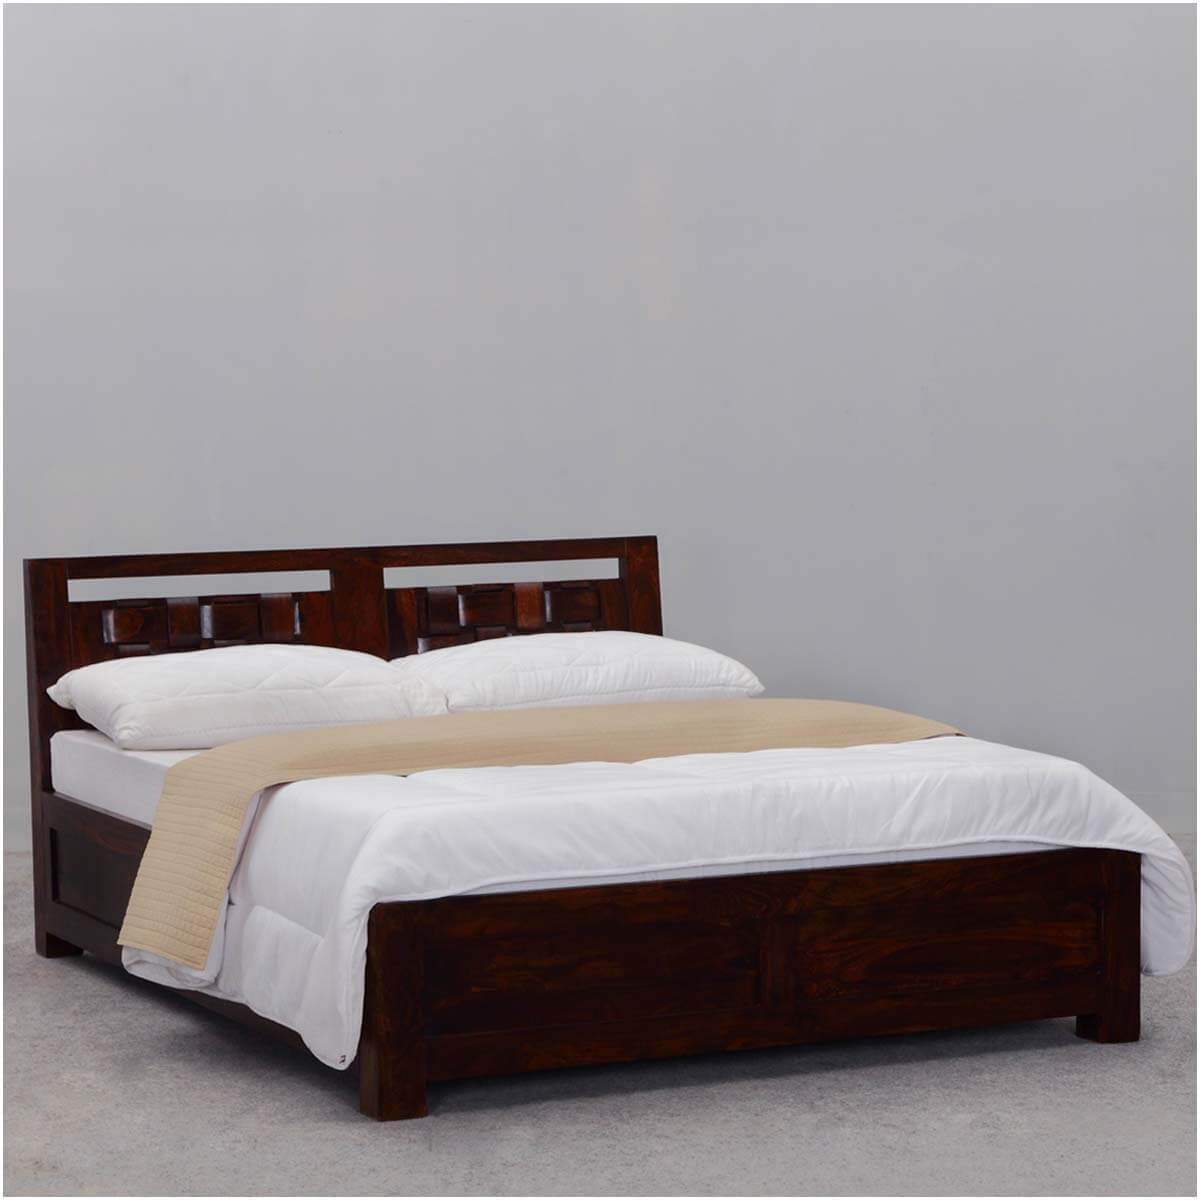 Modern rustic minnesota solid wood platform bed w headboard Wood platform bed